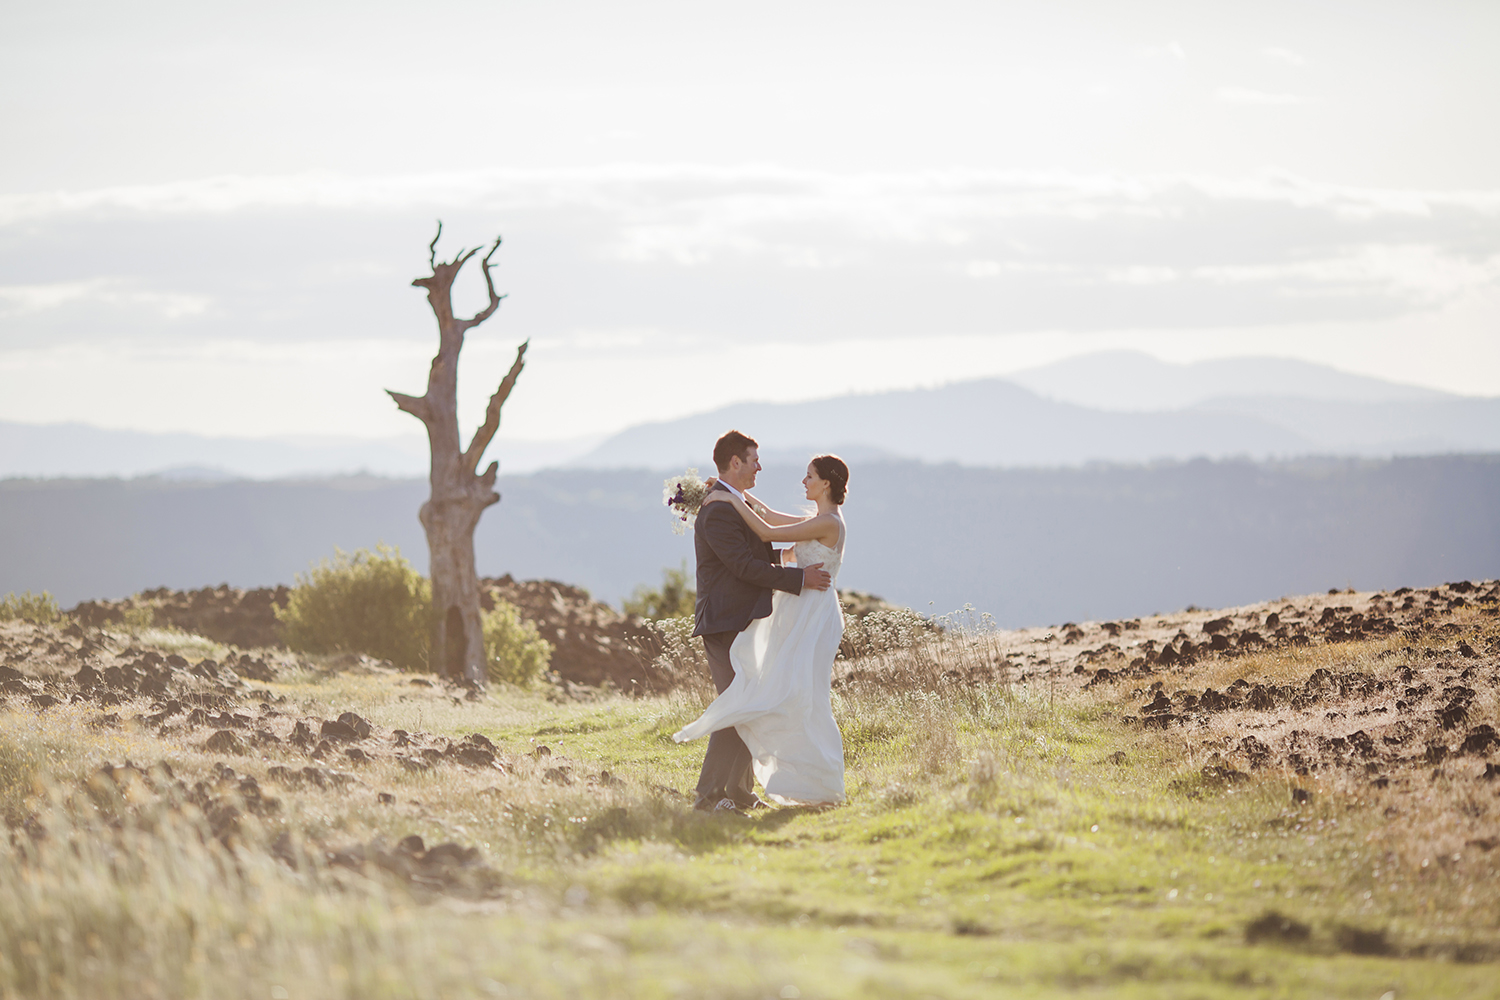 A Wedding on top of the World - http://www.cloudydayphoto.com/